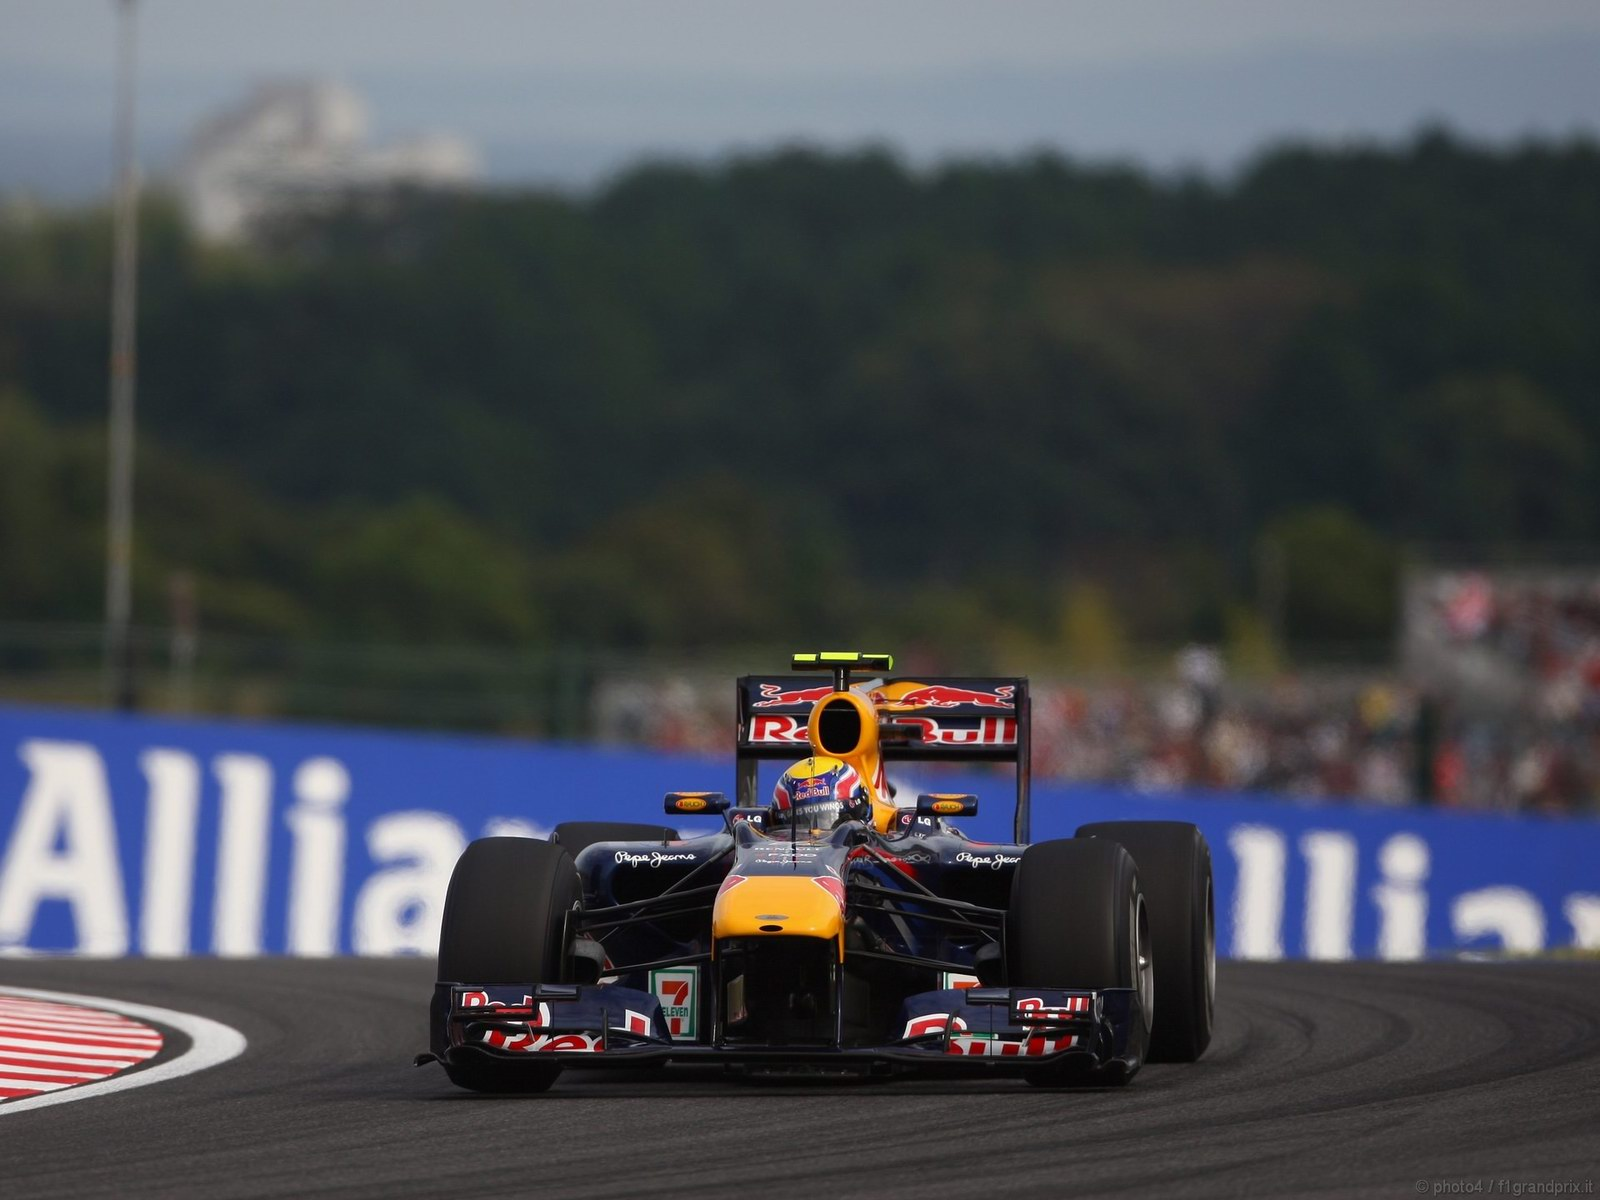 pojazdy - formula1 - gp_giappone_wallpapers_000068